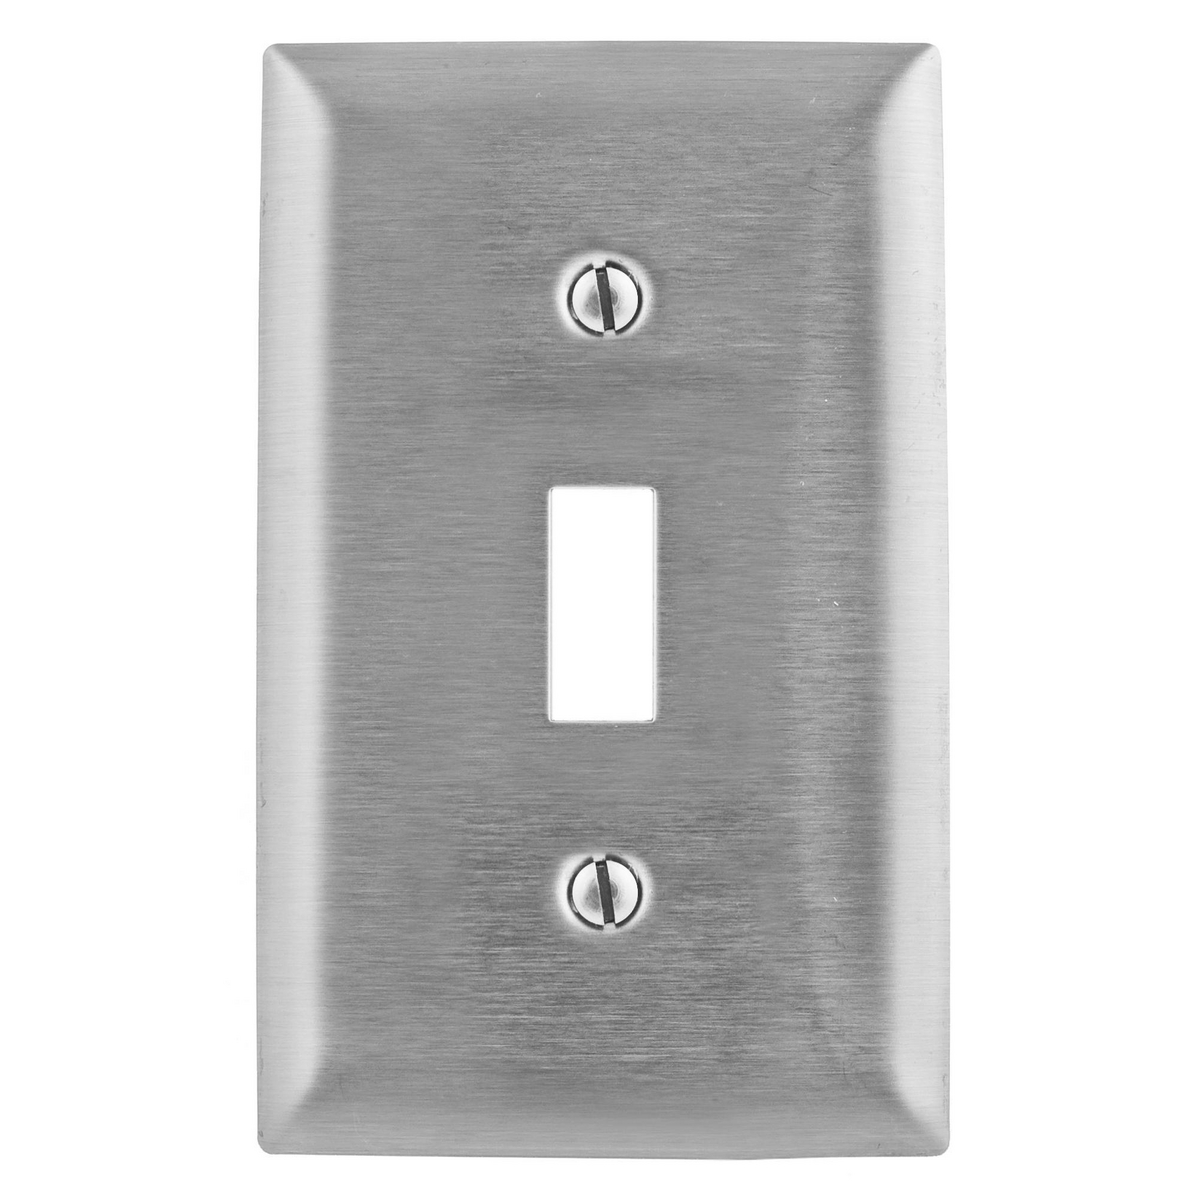 Hubbell SSJ1 1-Gang Stainless Steel Jumbo 1-Toggle Switch Strap Mount Wallplate